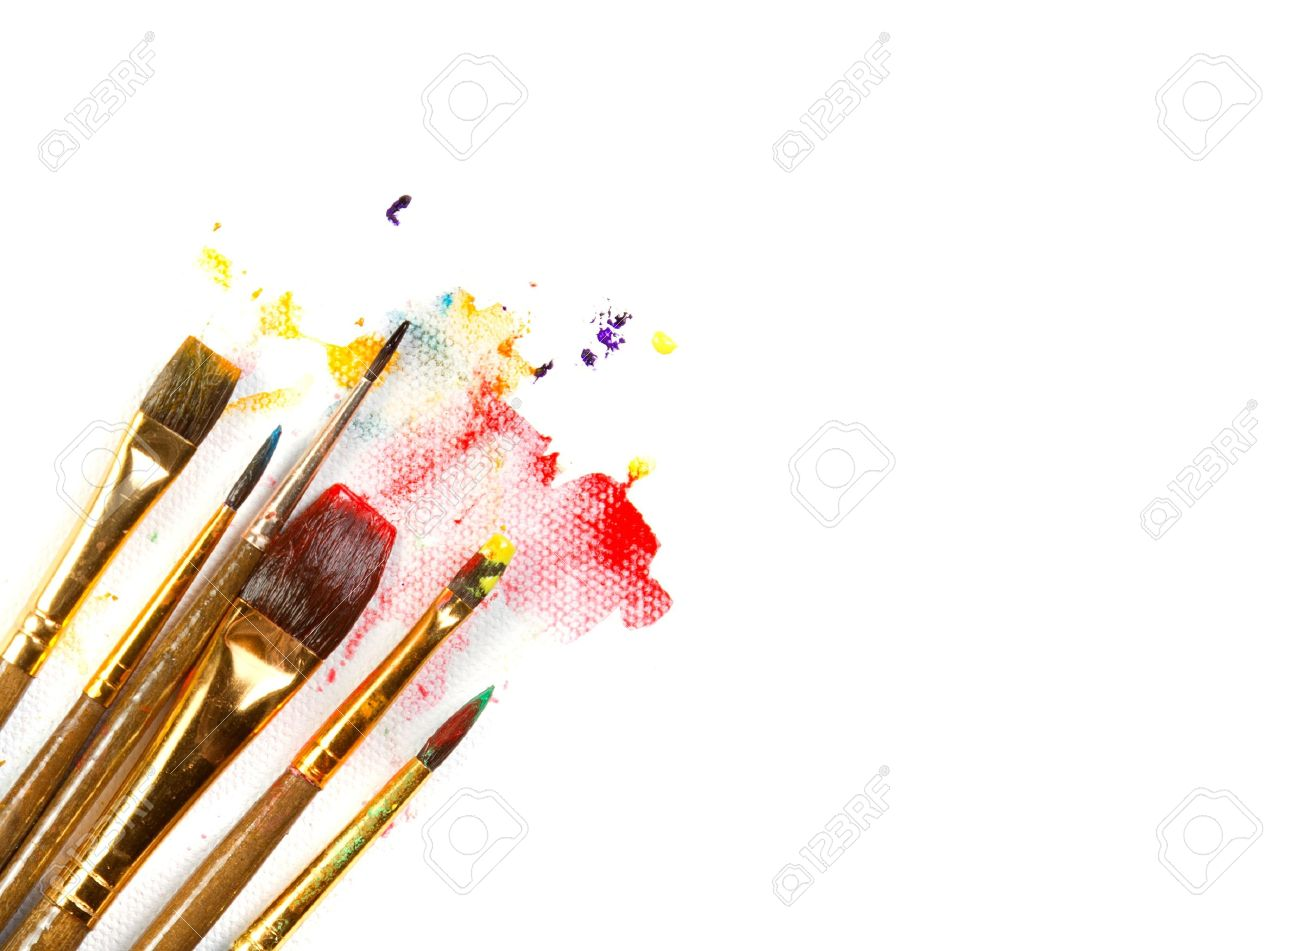 paint brushes and canvas. assorted paint brushes on canvas background with splatter white stock photo 13497888 and 123rf photos